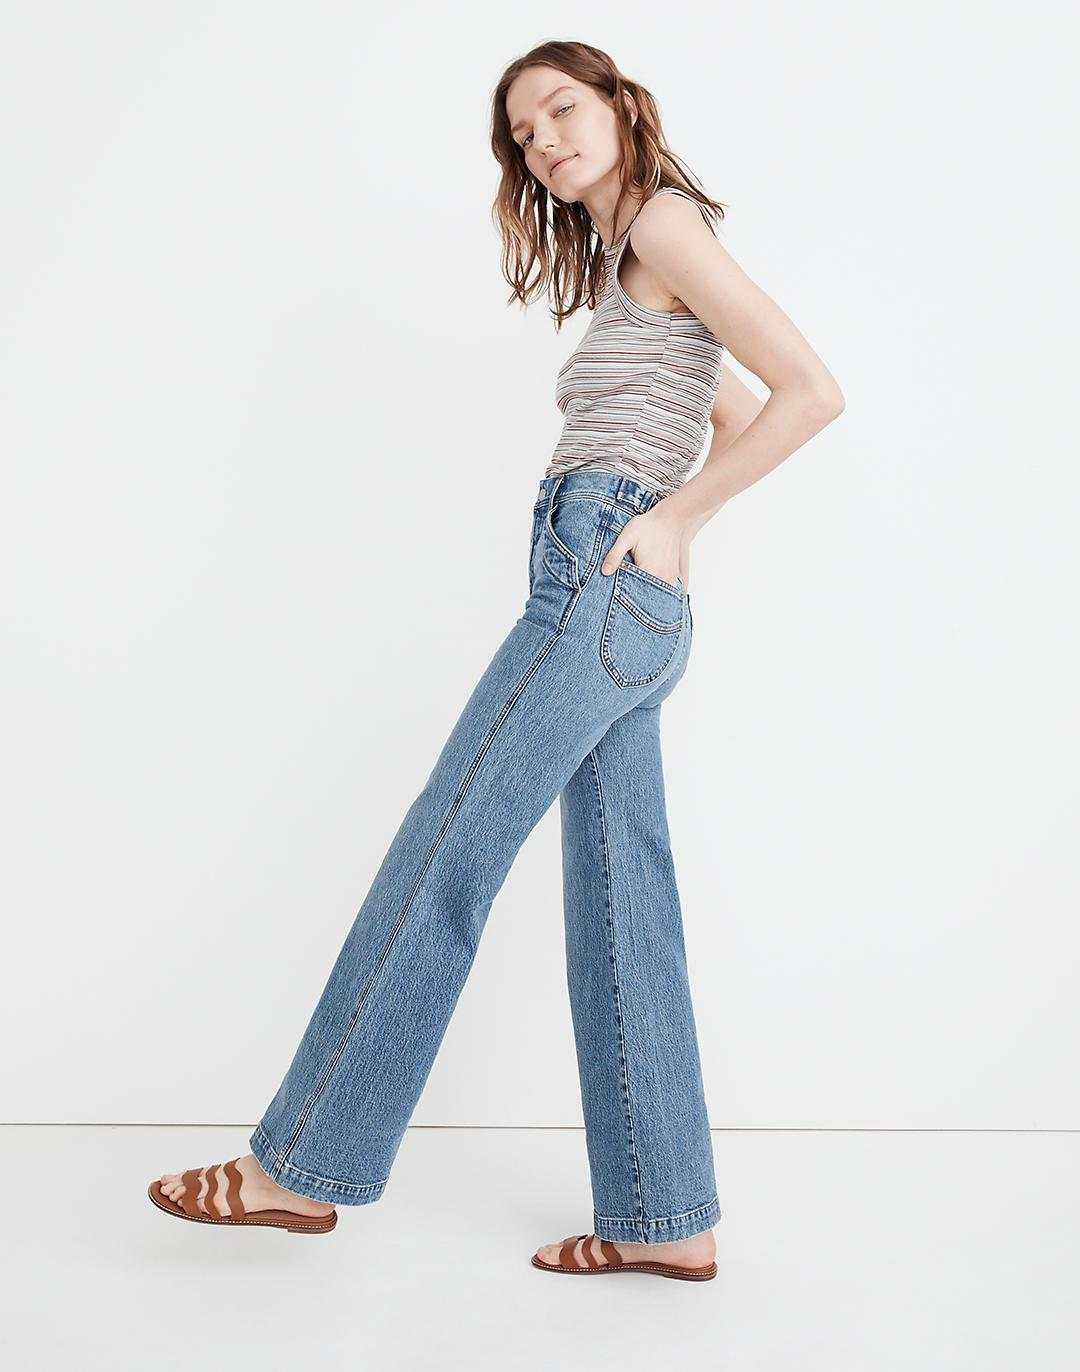 """11"""" High-Rise Flare Jeans in Erickson Wash: Stitched-Pocket Edition 1"""